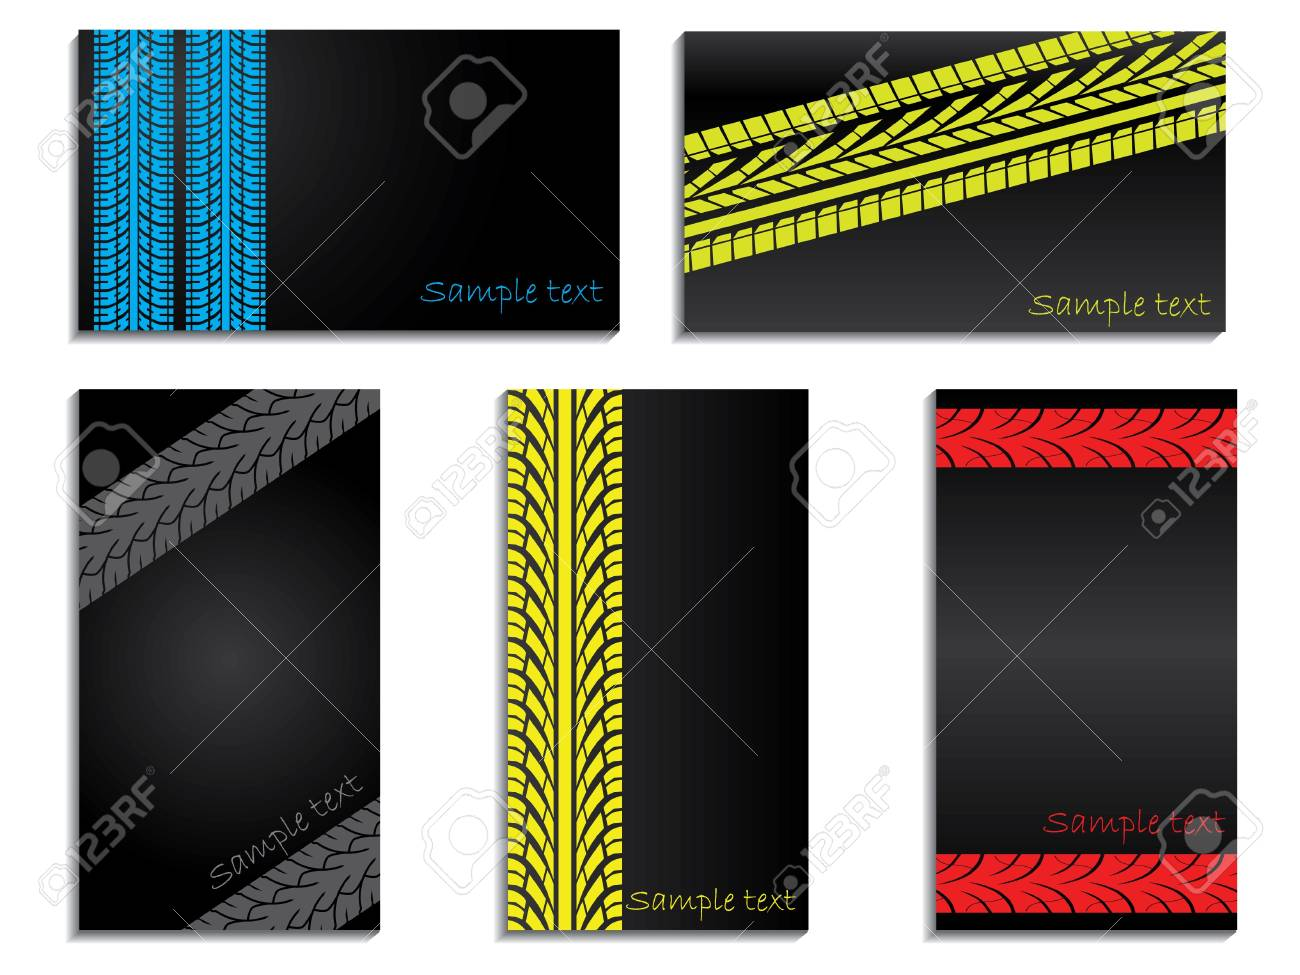 Tracked color business card set Stock Photo - 7272296